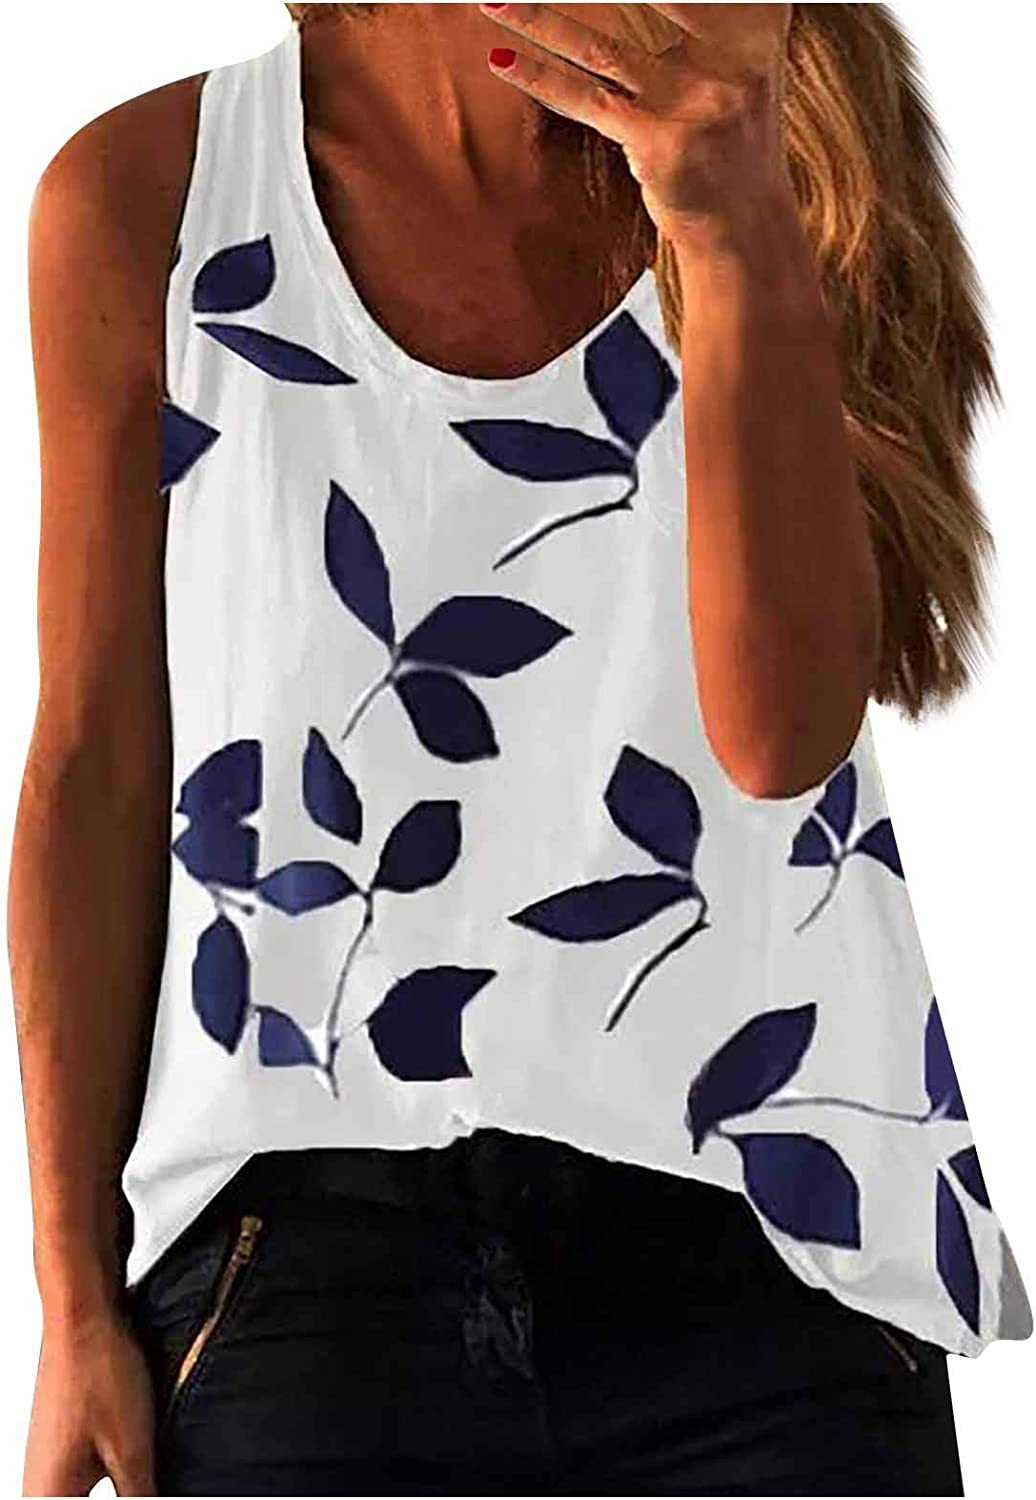 Women's Tropical Leaf Print Tank Tops O Neck Beach Loose Casual Sleeveless Camisole Tanks Tops and Blouse